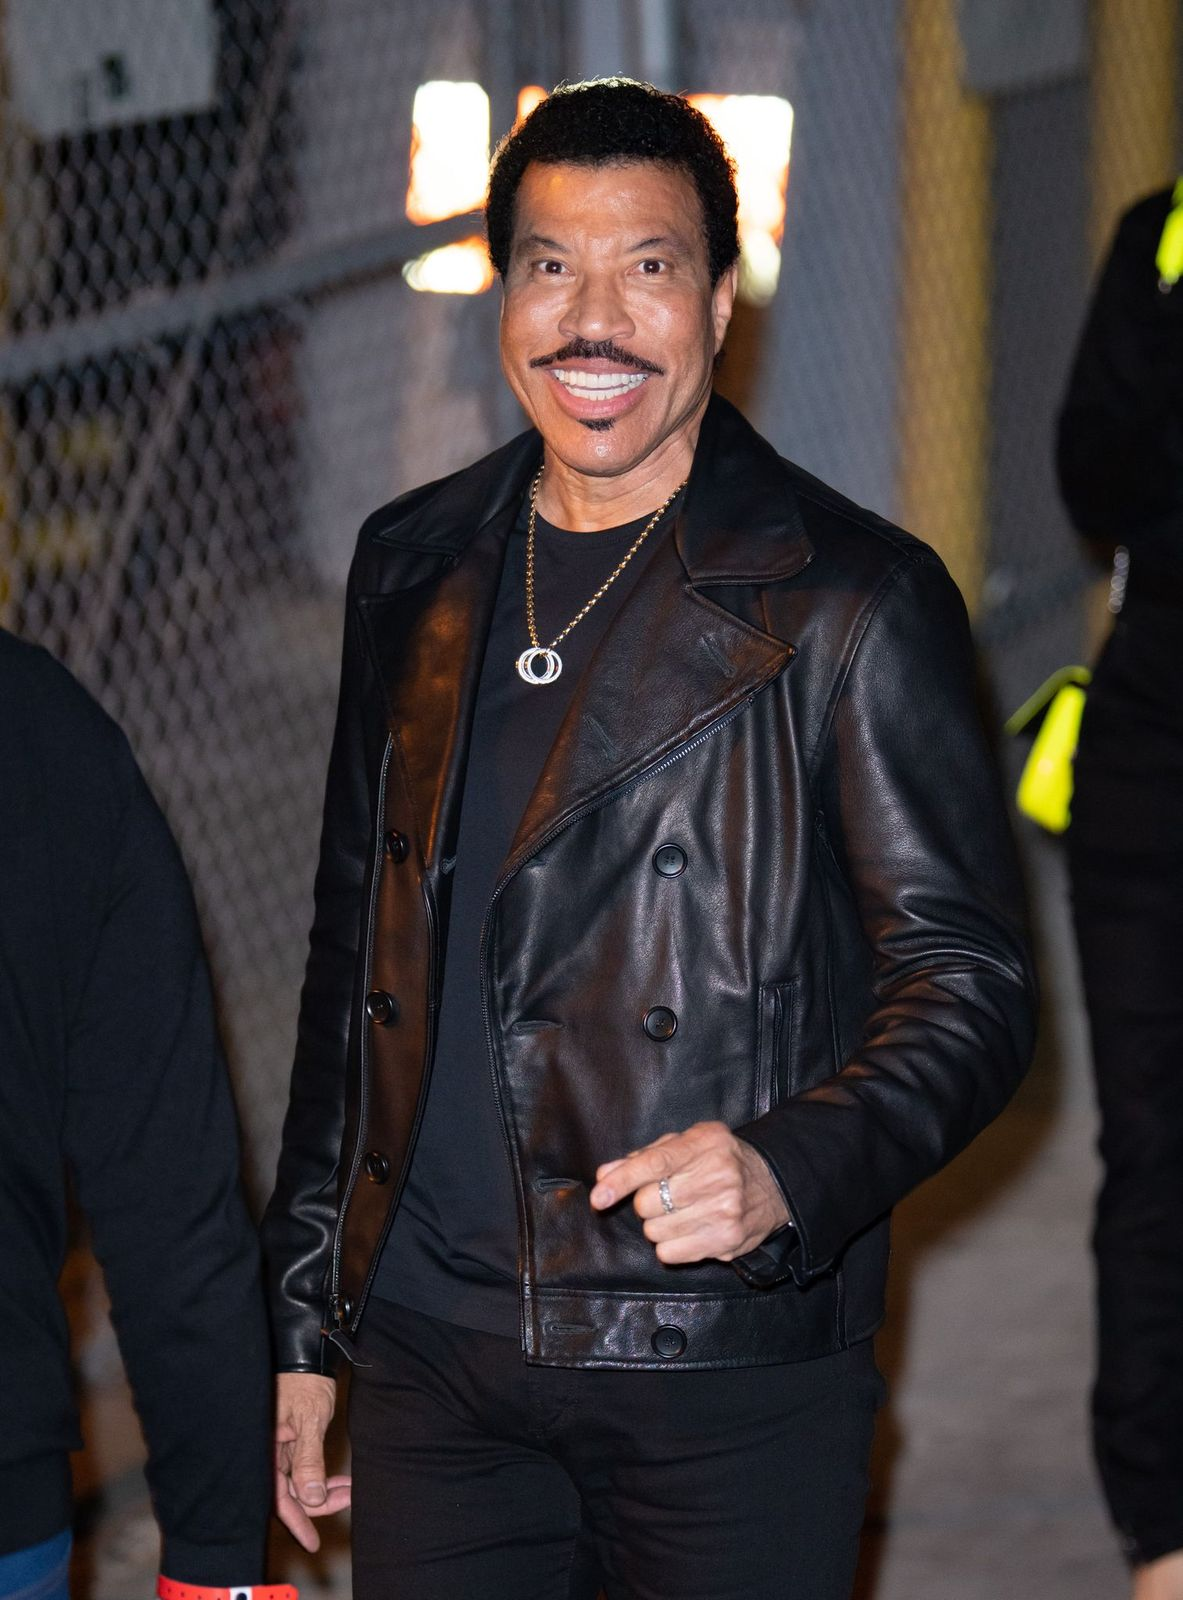 """Lionel Richieat """"Jimmy Kimmel Live""""on February 12, 2020, in Los Angeles, California 